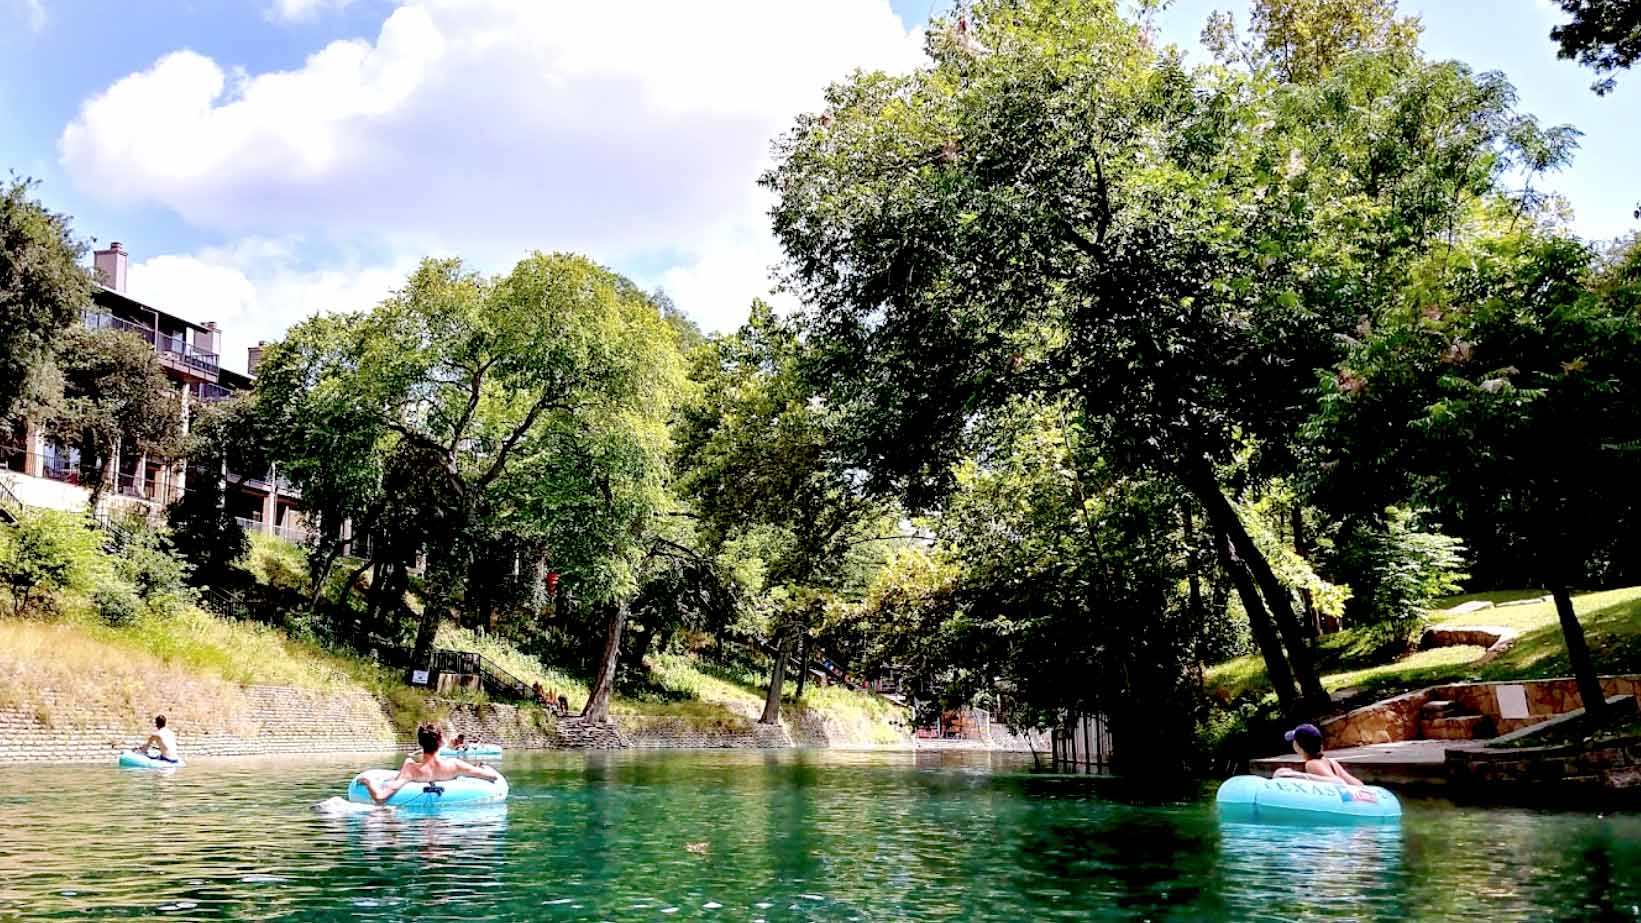 Image of Comal River